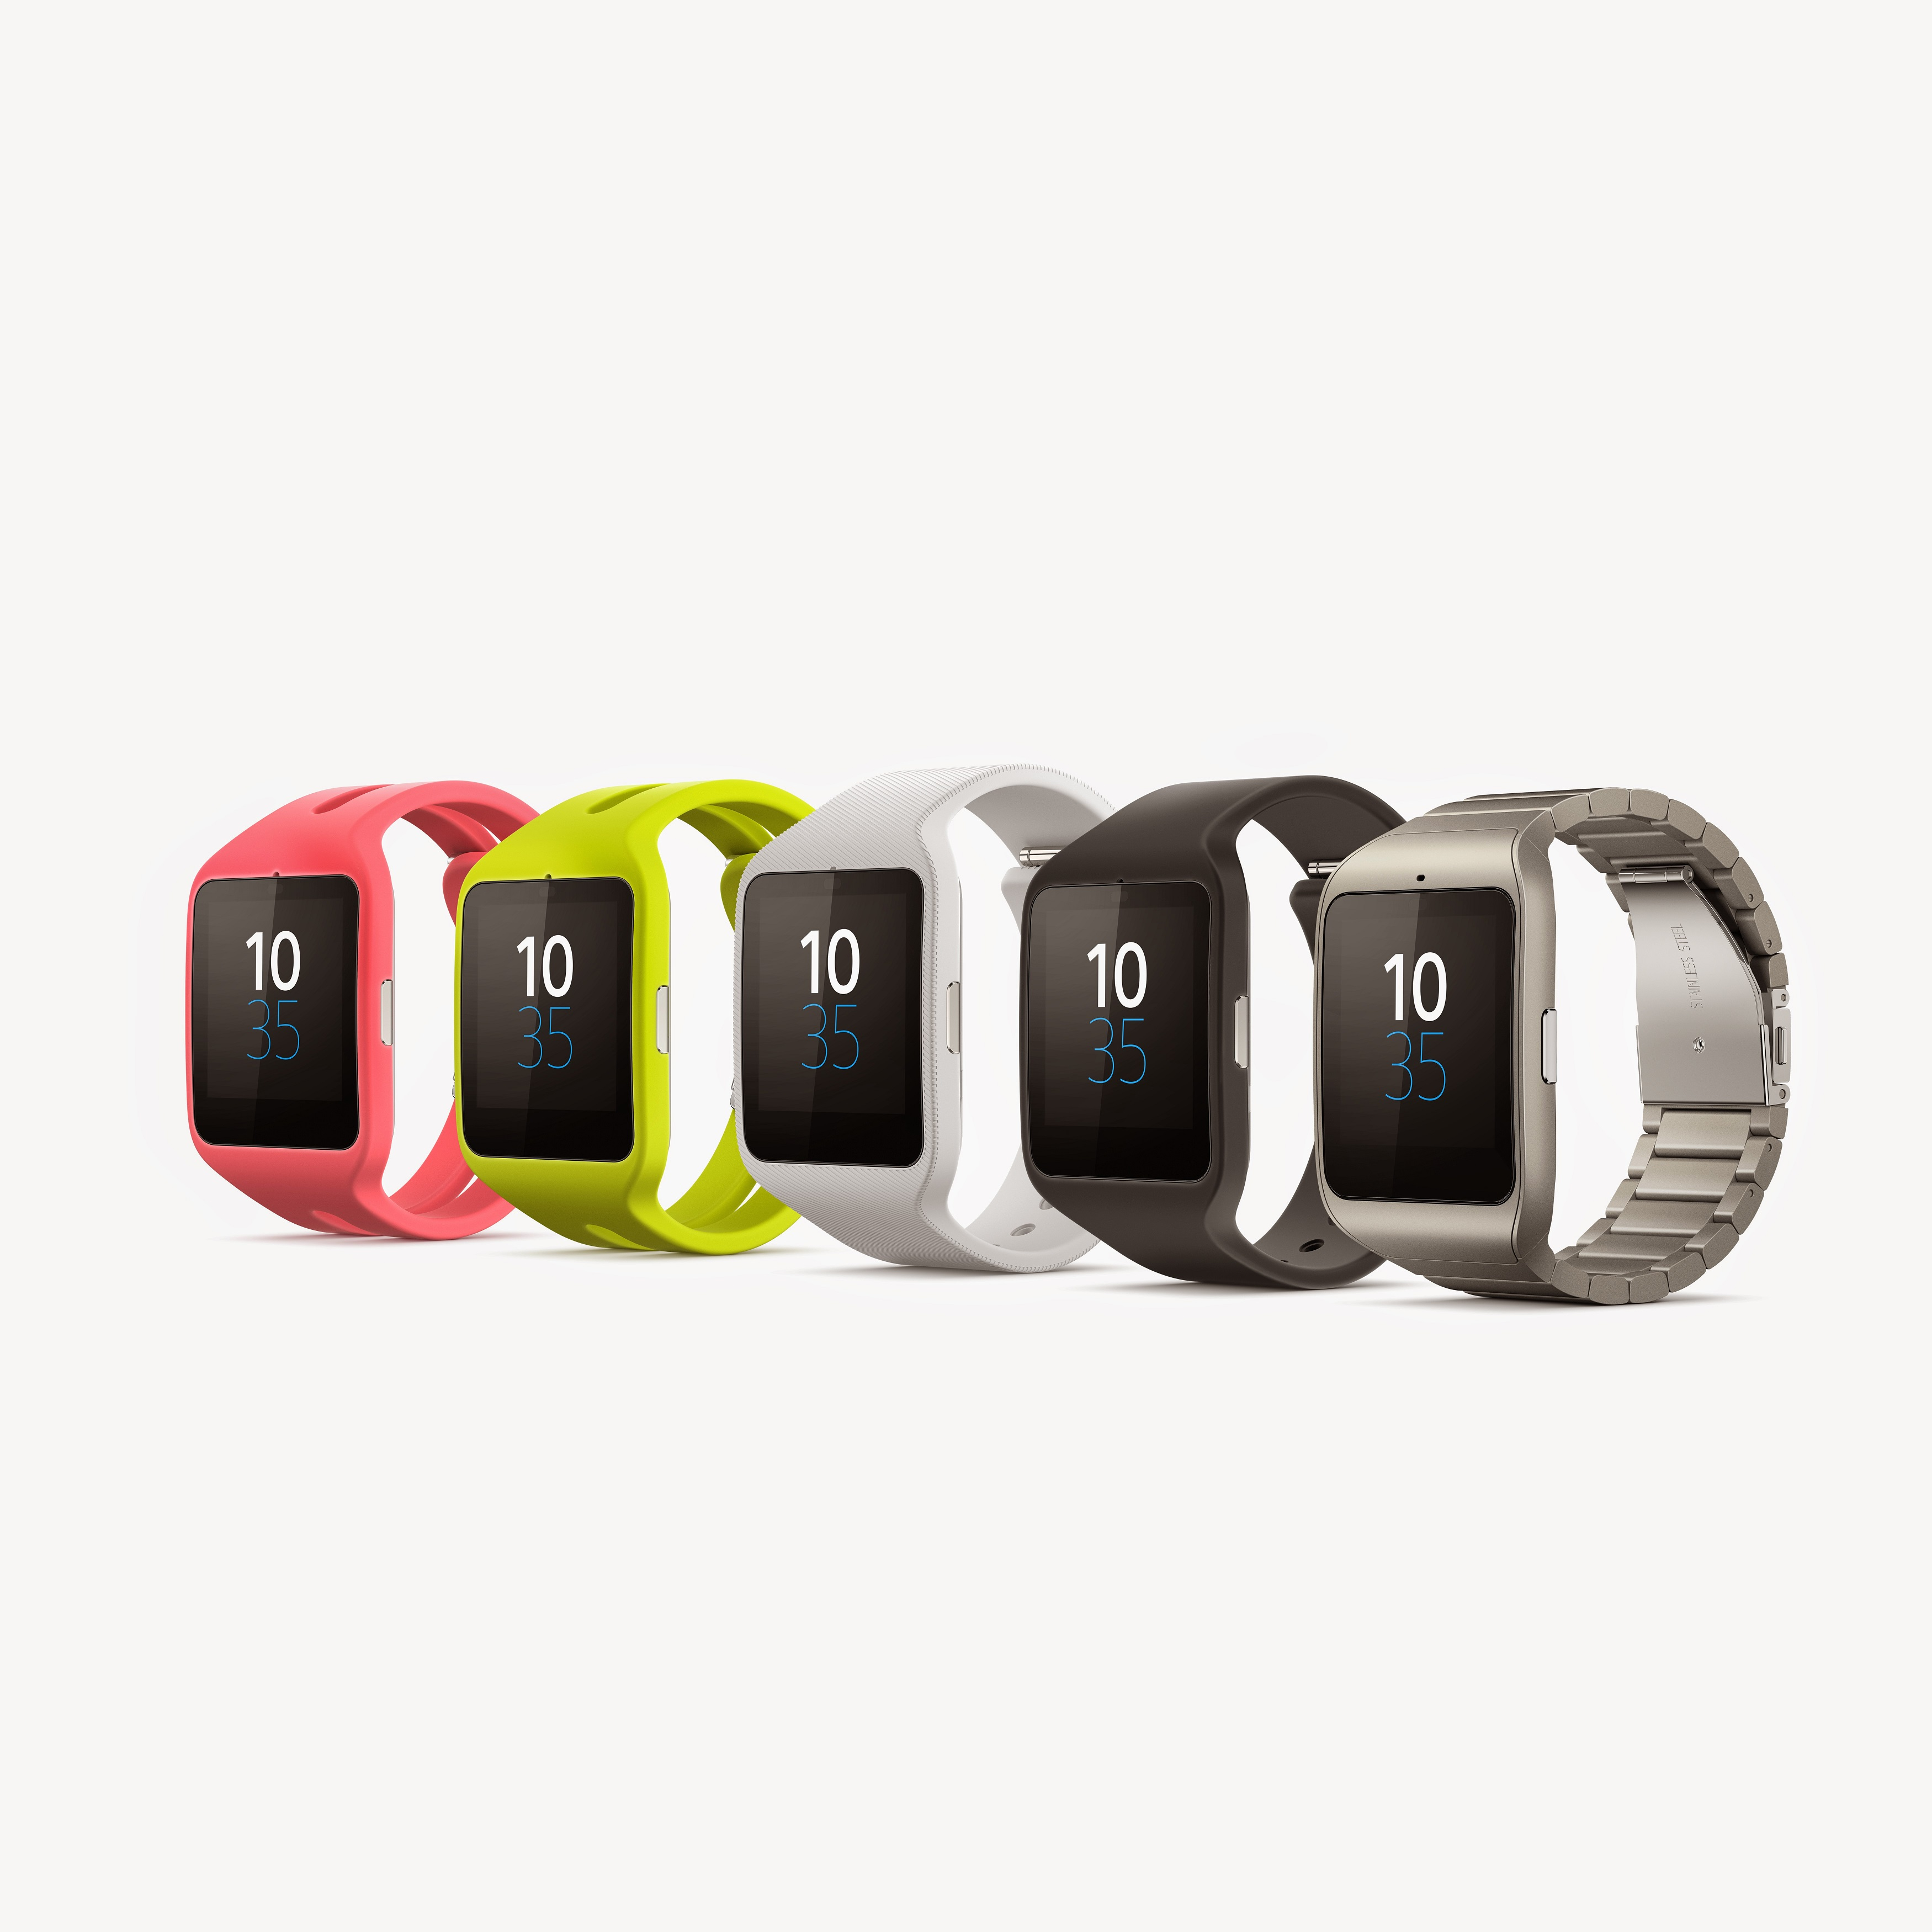 03 SmartWatch3 colour range_low res